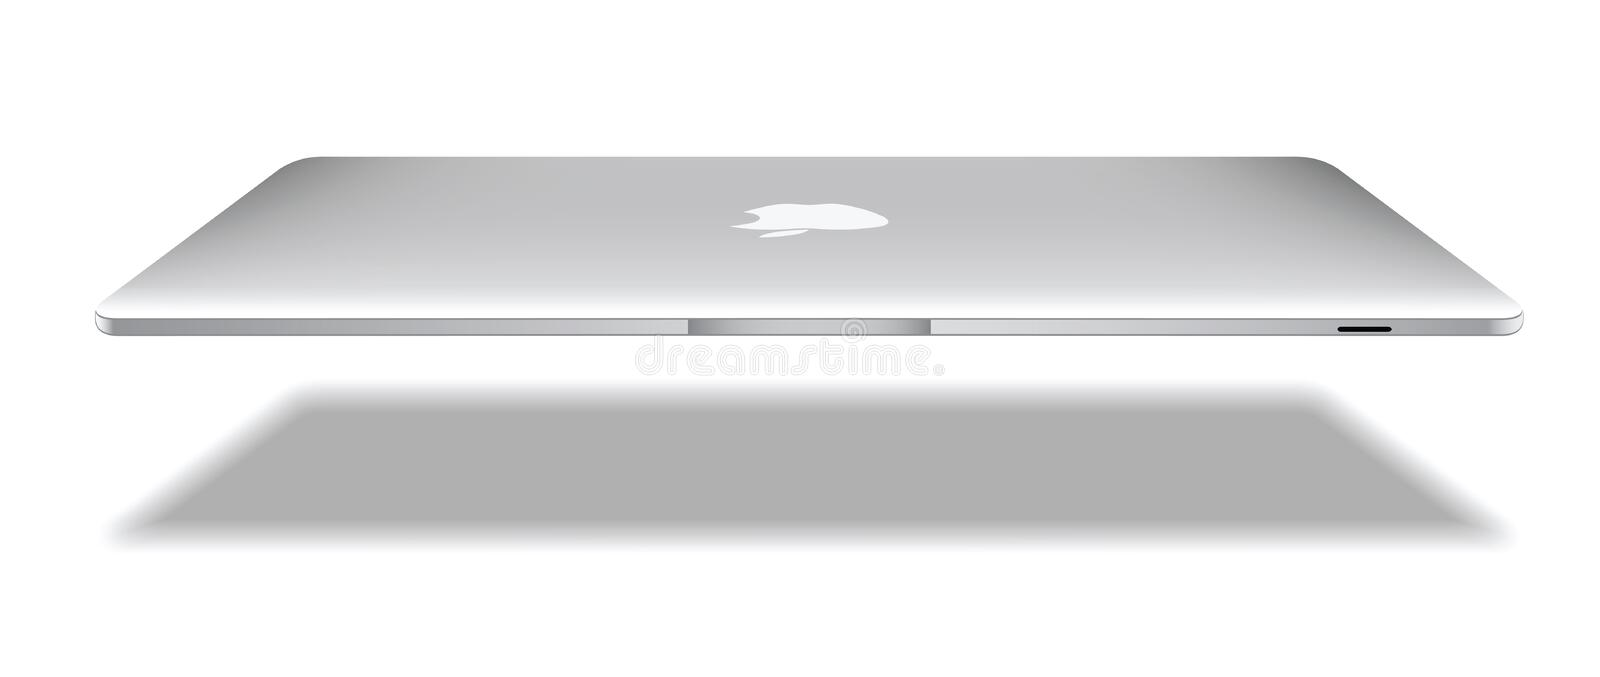 Apple macbook air royalty free illustration